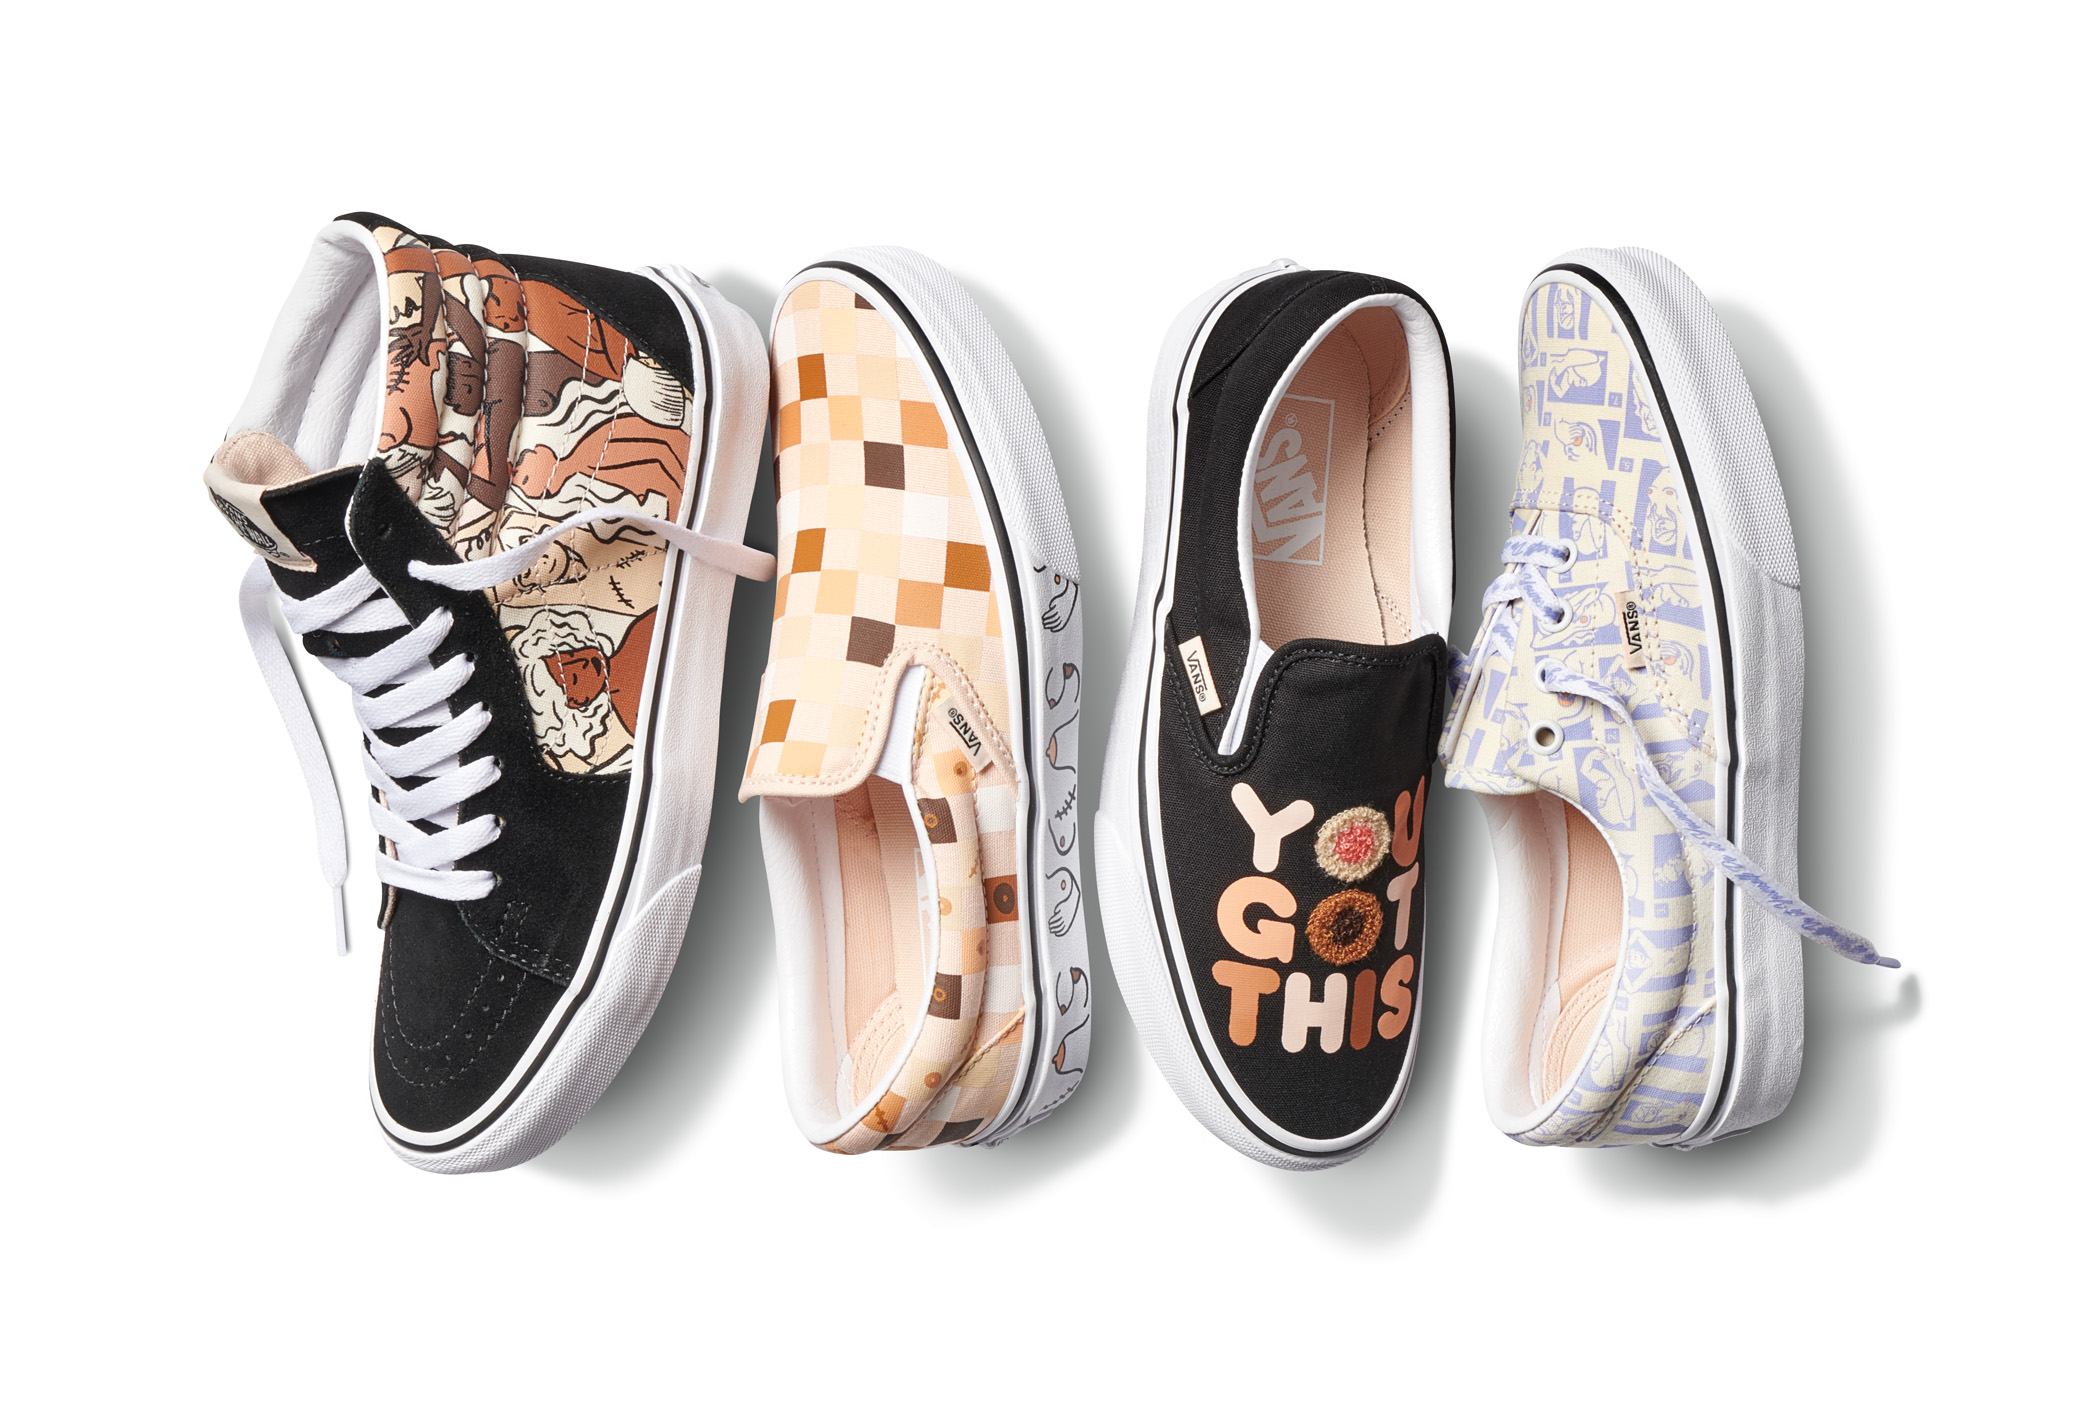 Vans Releases Collection To Honor Breast Cancer Awareness